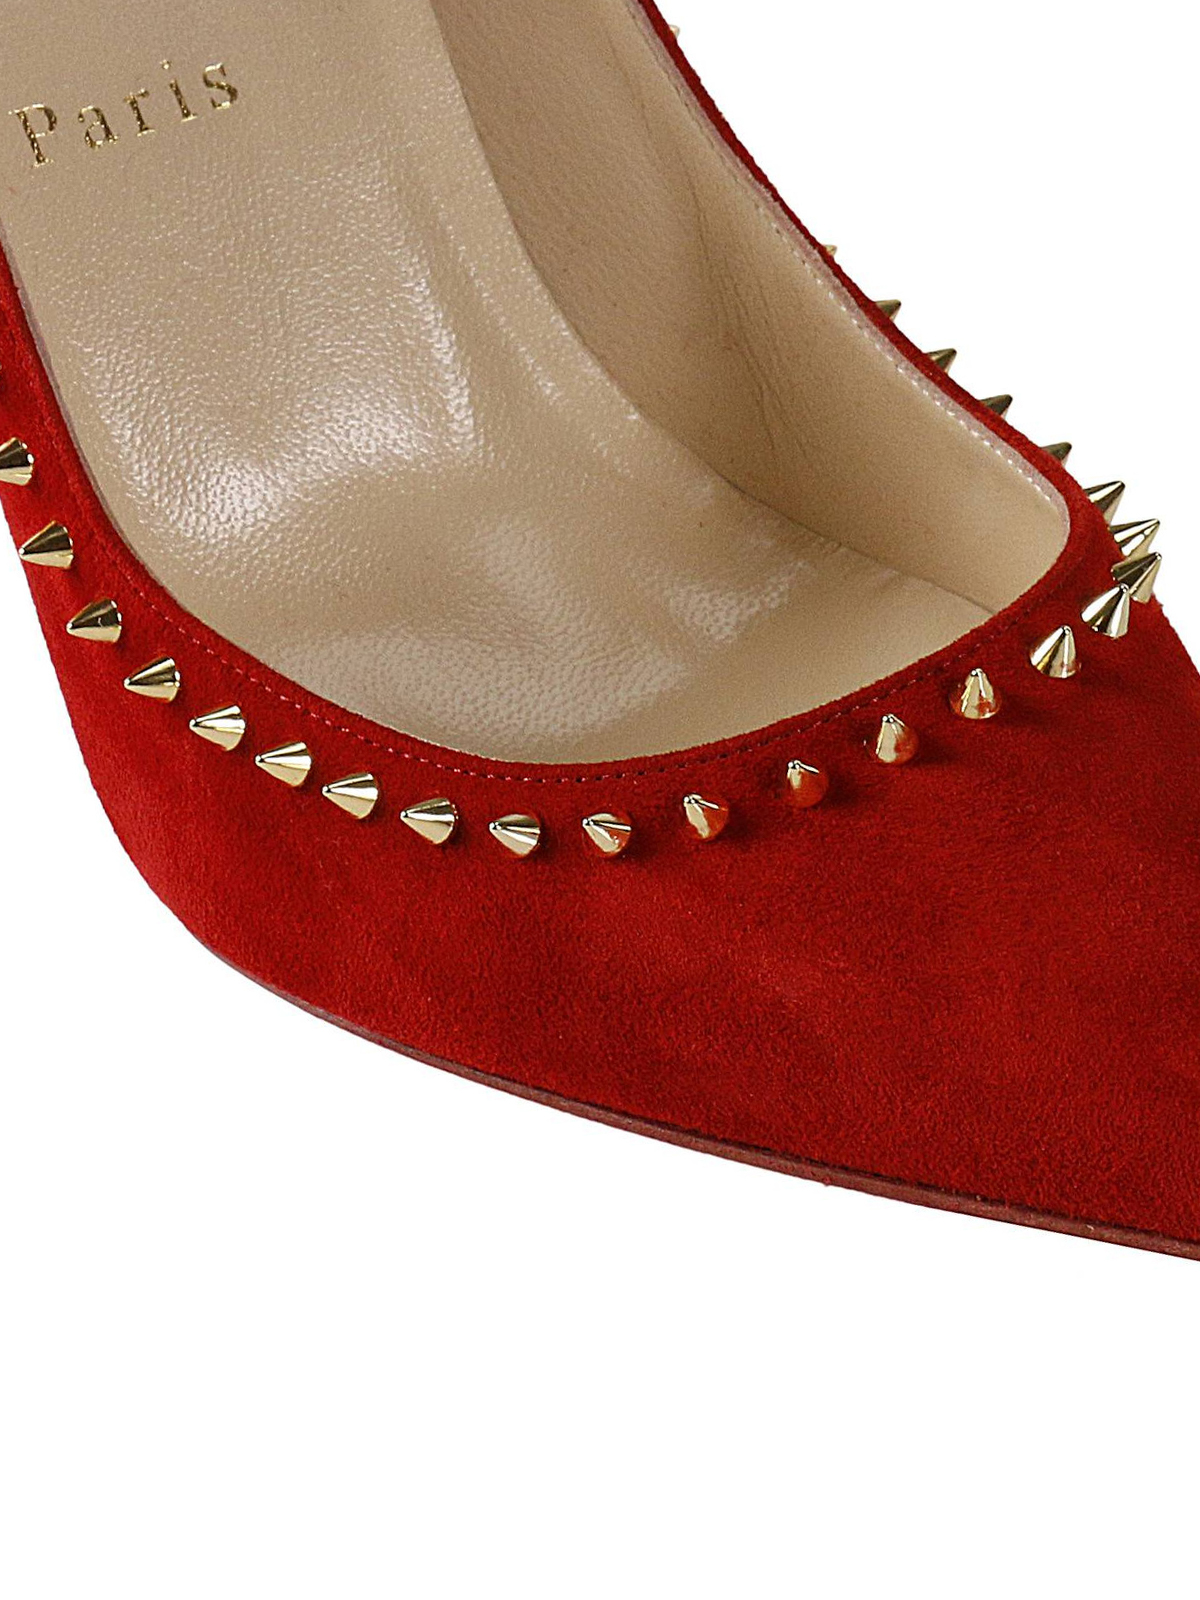 843639c5380f iKRIX CHRISTIAN LOUBOUTIN  court shoes - Anjalina red suede pumps